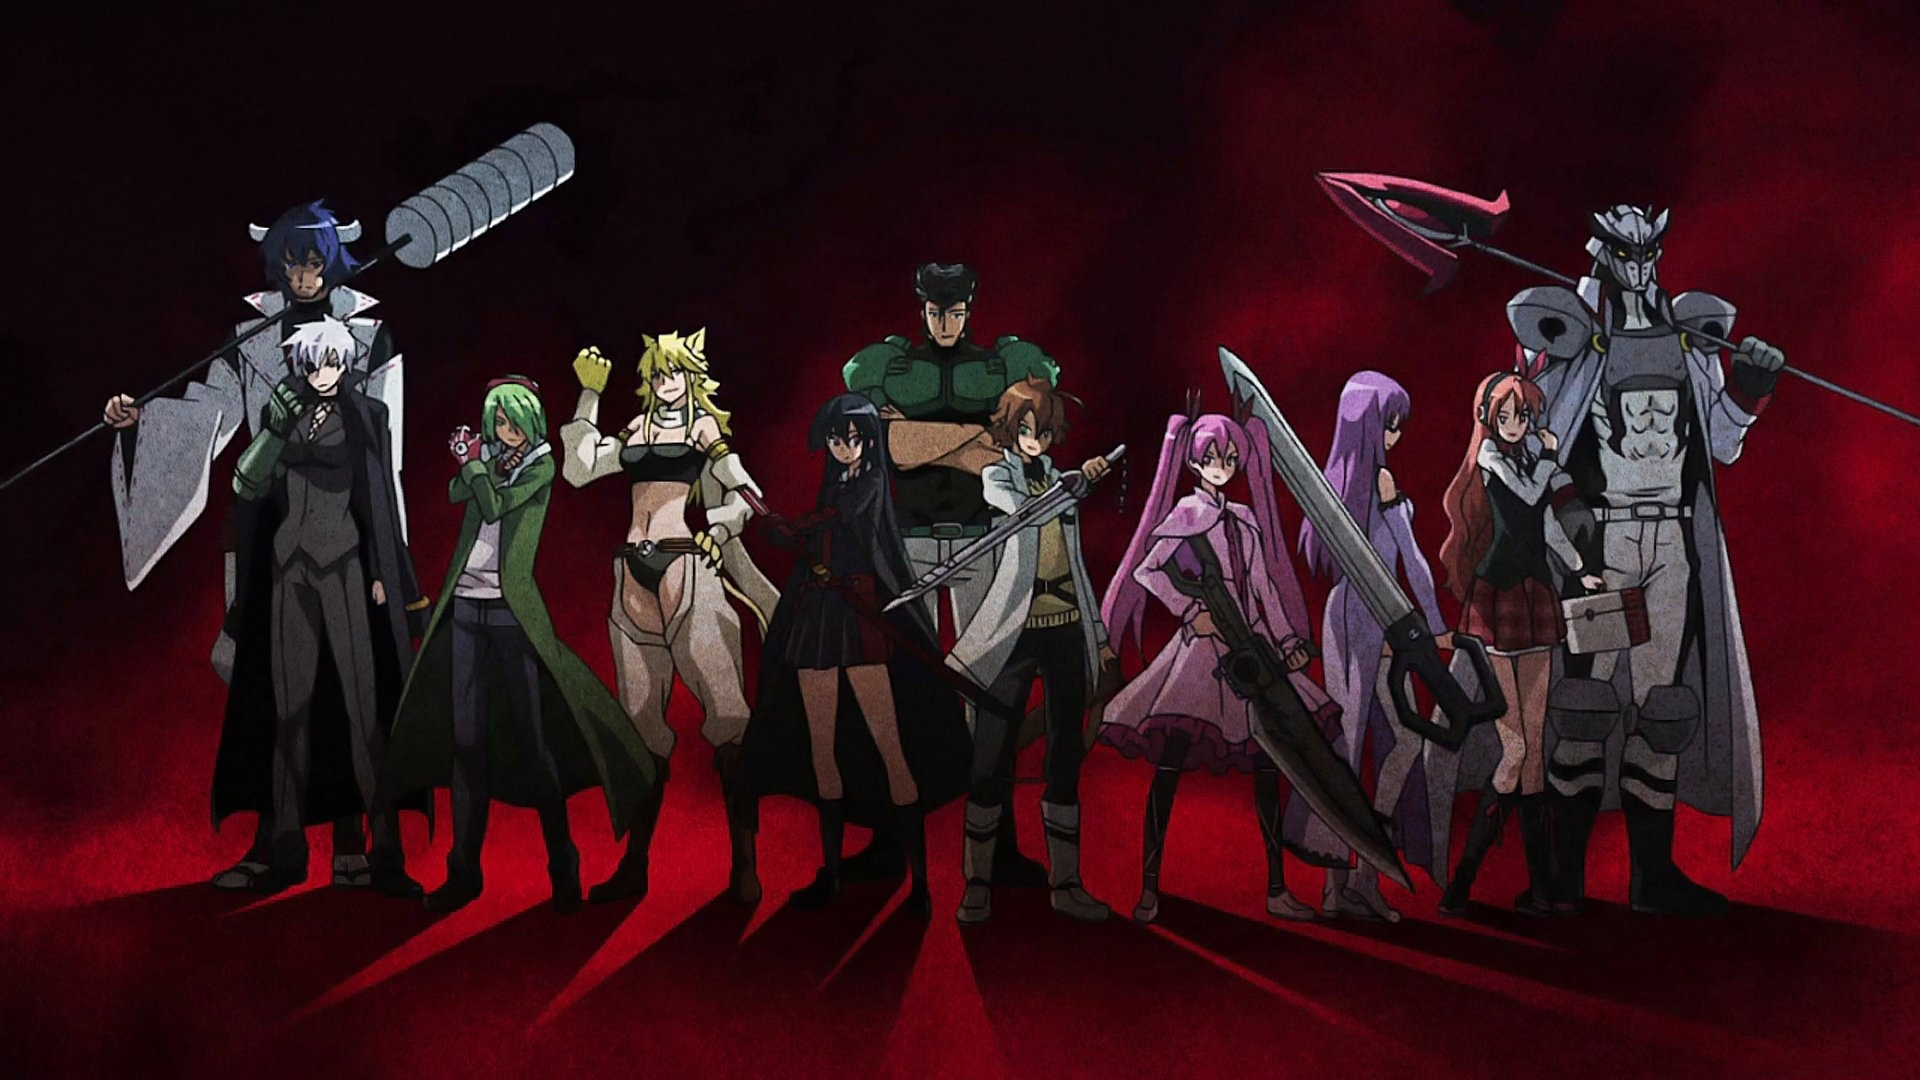 252 akame ga kill! hd wallpapers | background images - wallpaper abyss